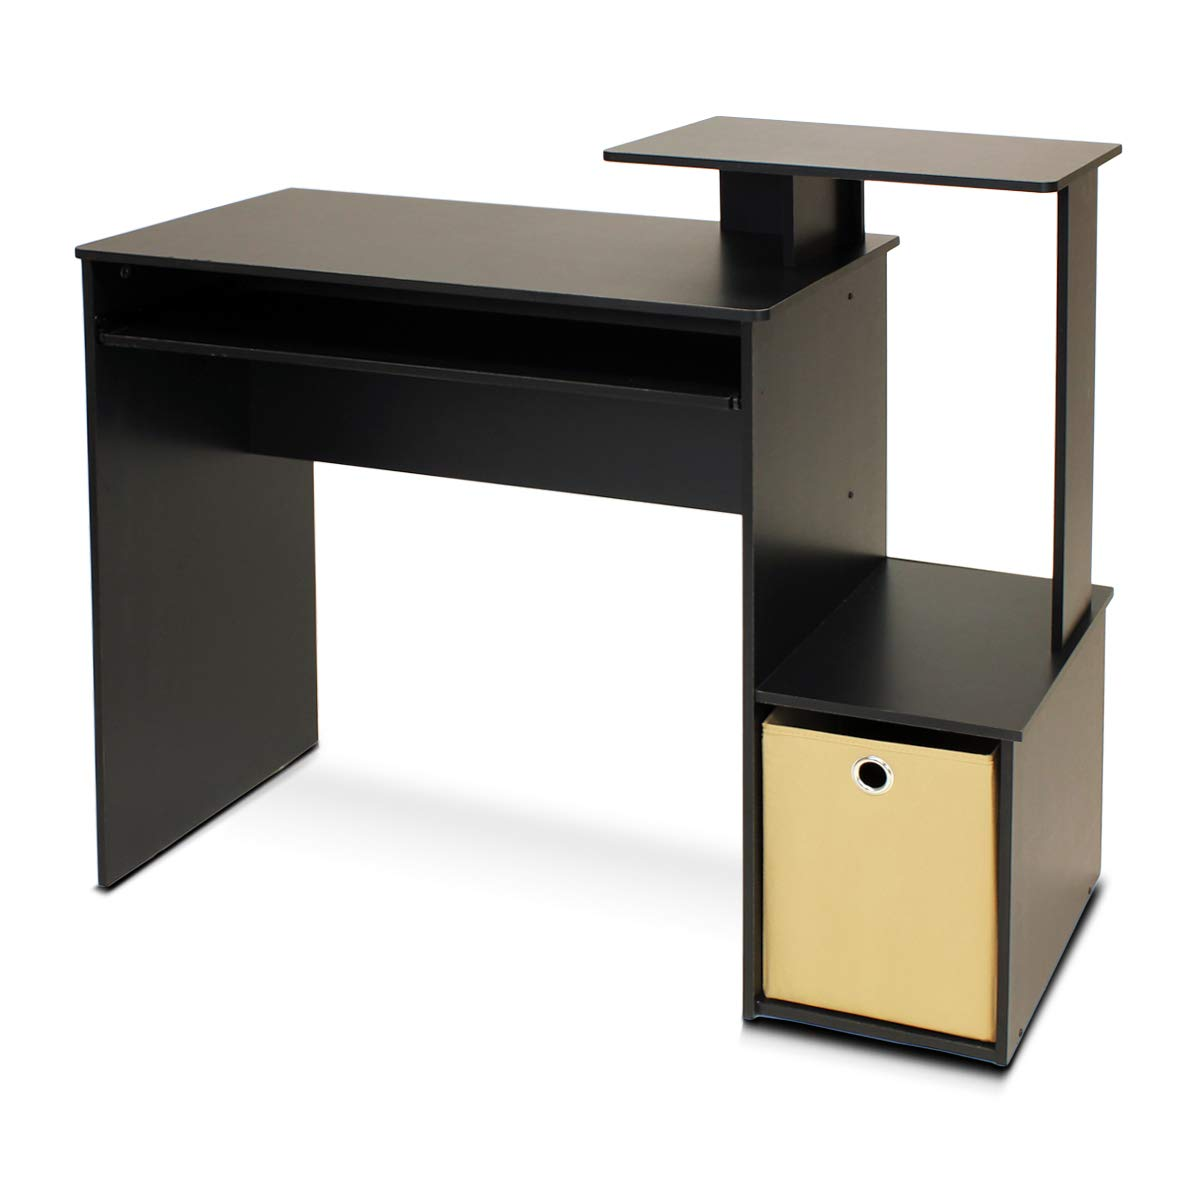 Furinno Econ Multipurpose Home Office Computer Writing Desk with Bin by Furinno